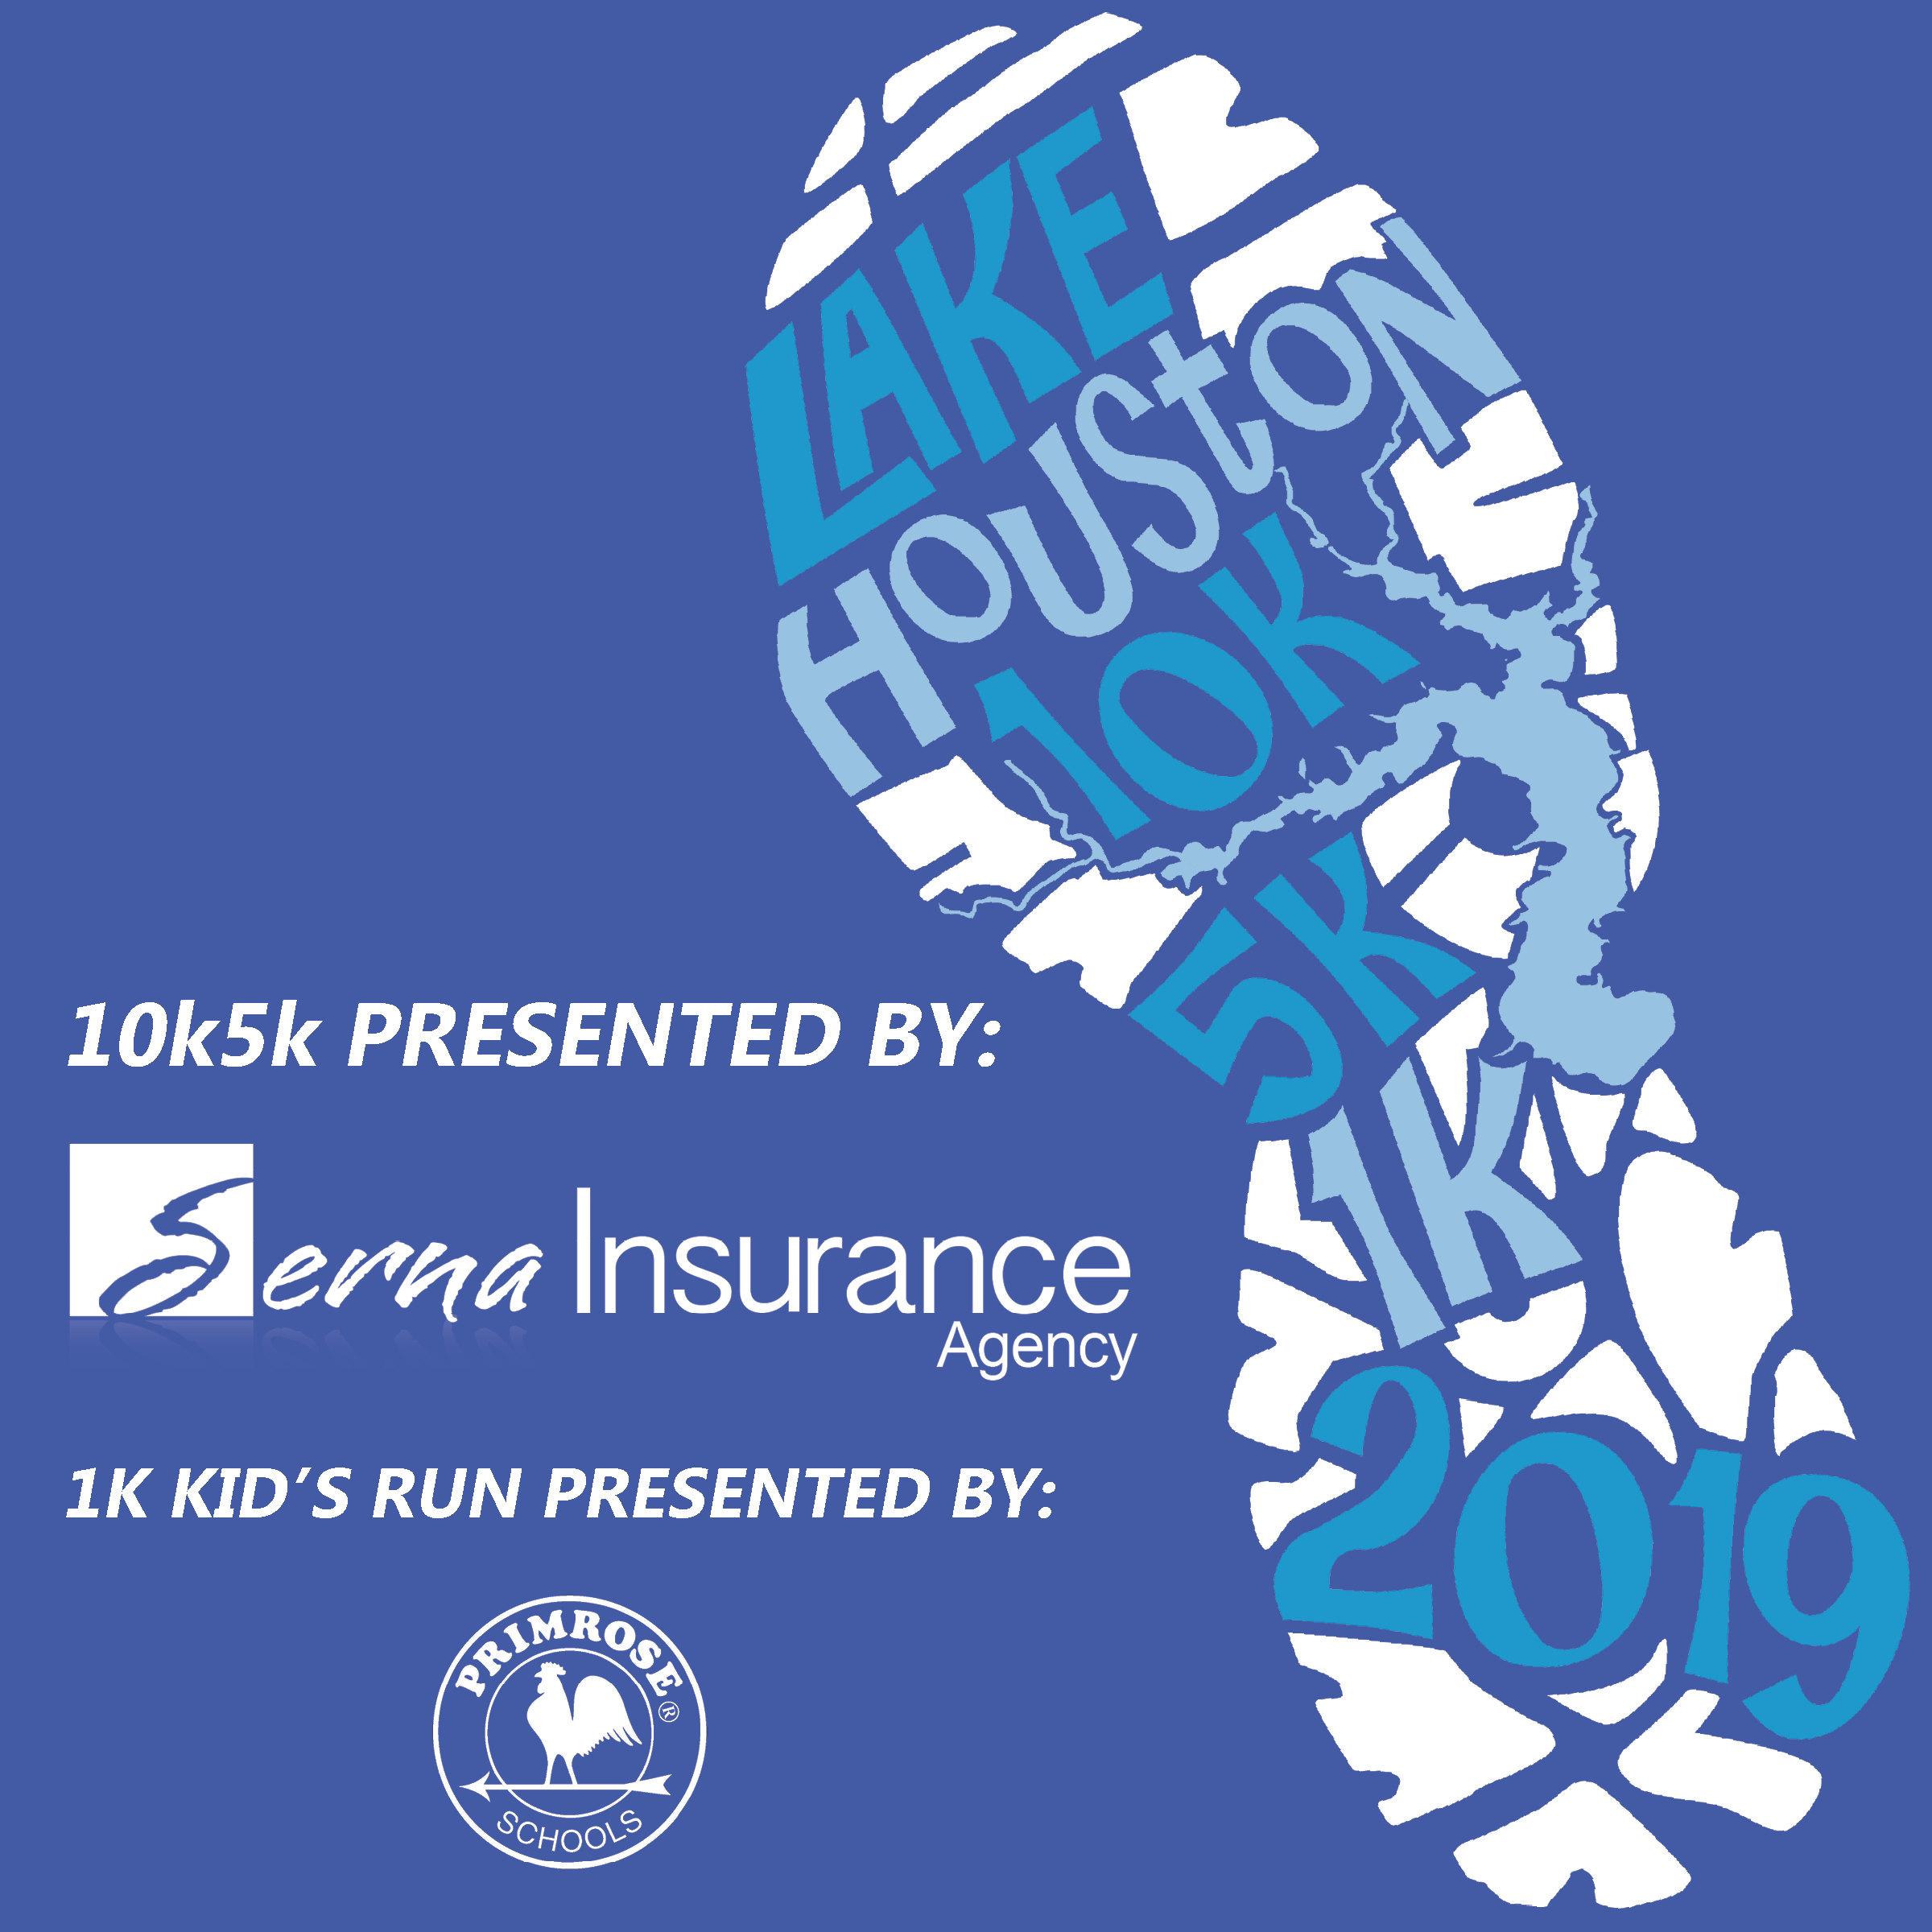 10th Annual Lake Houston 10k, 5K, and 1K Kids Run.   Presented by Serna Insurance and Primrose Schools. Kings Harbor